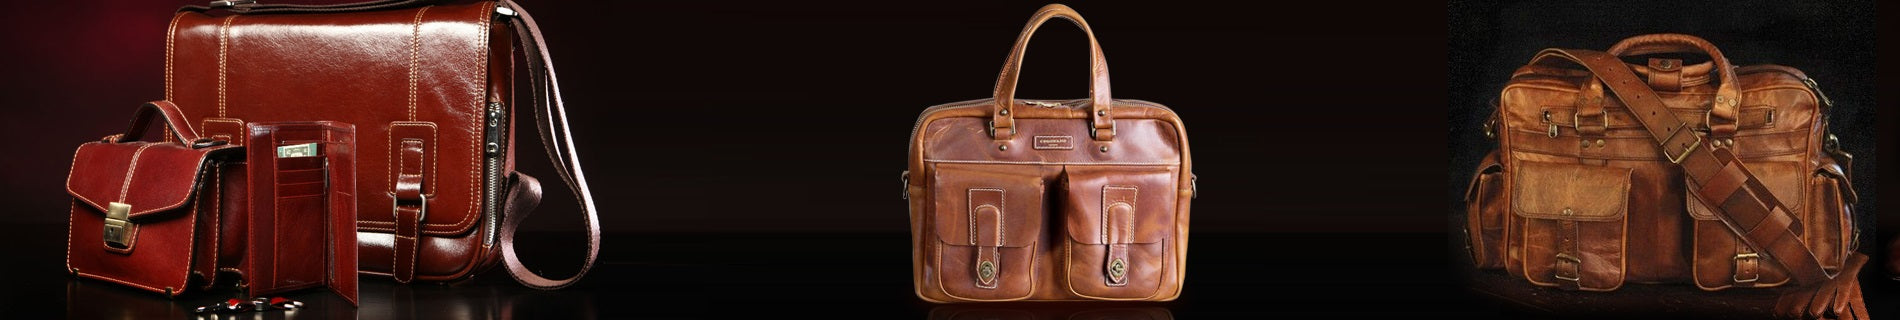 Men's Luggage & Bags